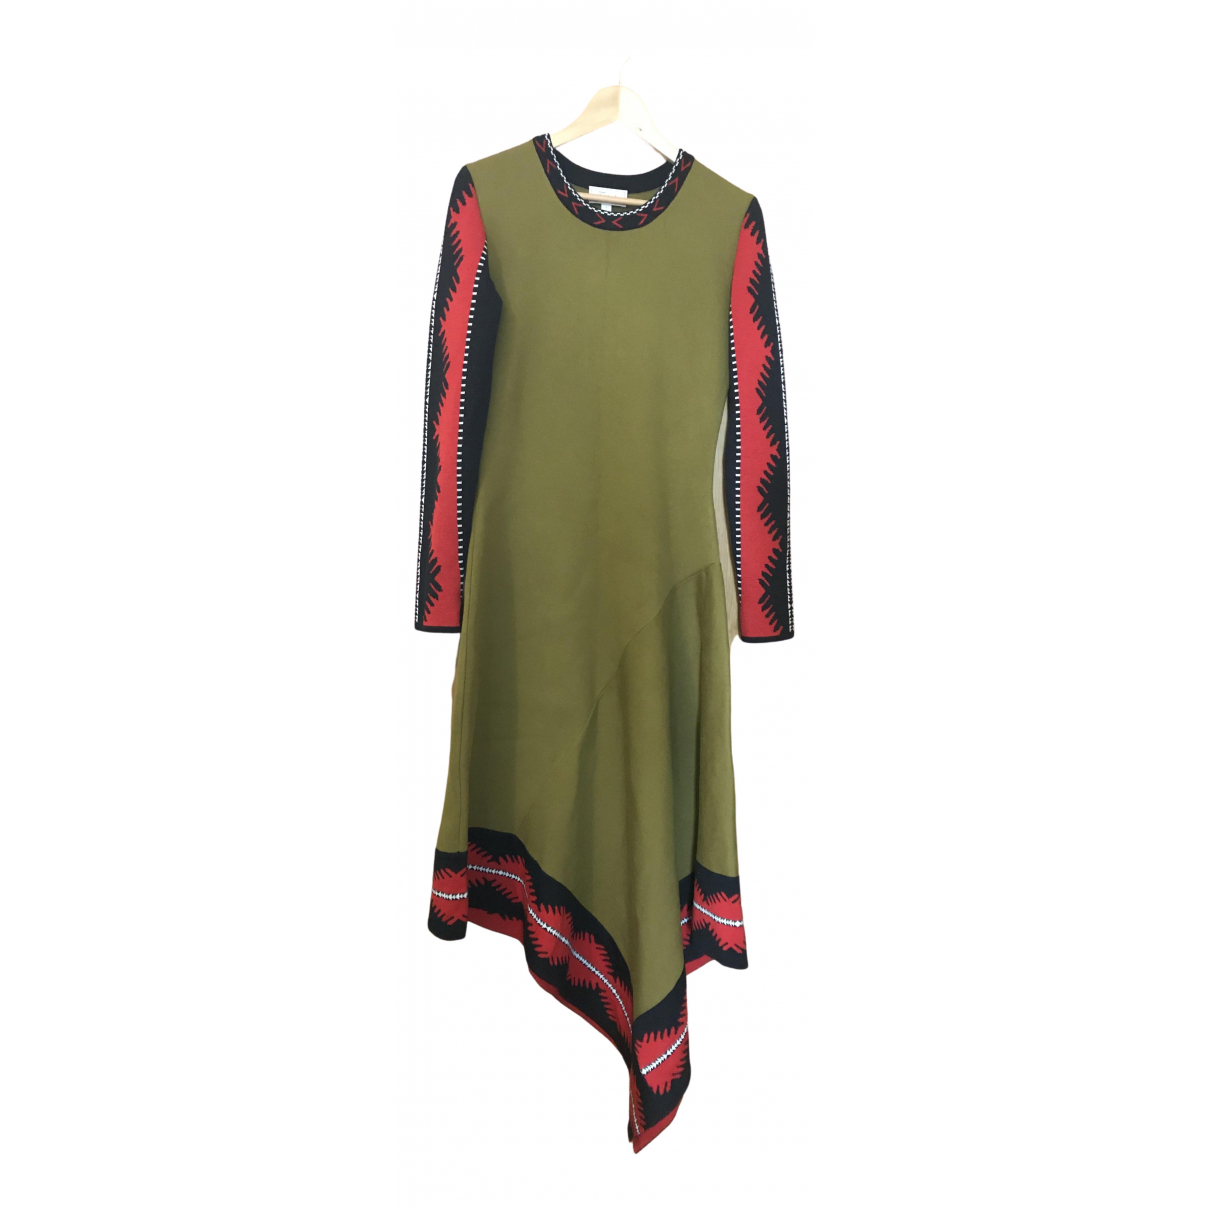 Temperley London \N Kleid in  Khaki Viskose